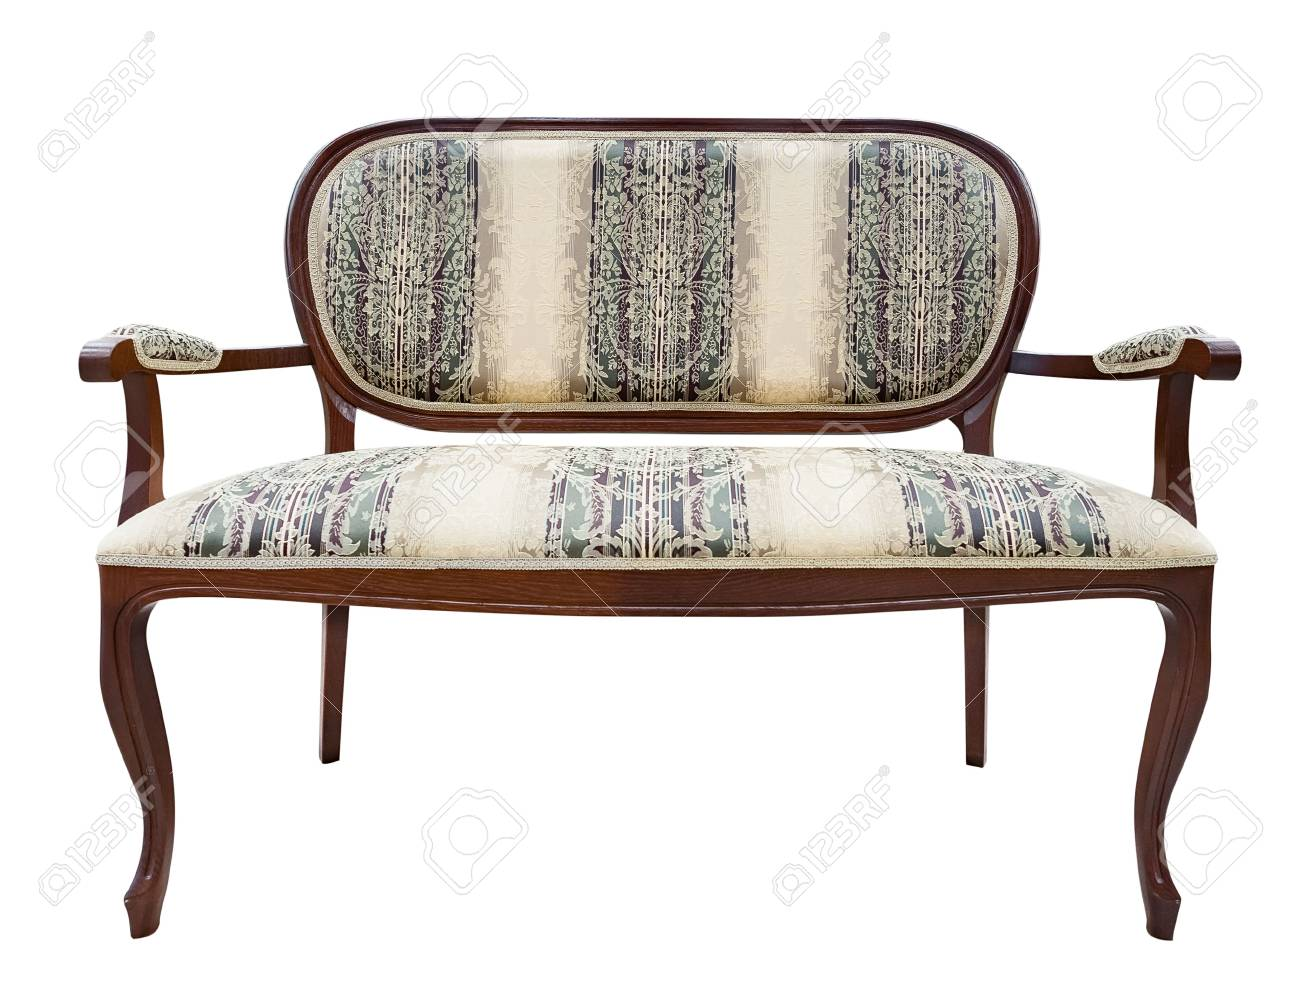 Full Size of Canape Sofa Classical Style Armchair Couch Carved Wood Upholstered Ecksofa Garten Lagerverkauf überzug Bullfrog Mit Holzfüßen Led Schillig Ligne Roset Sofa Canape Sofa